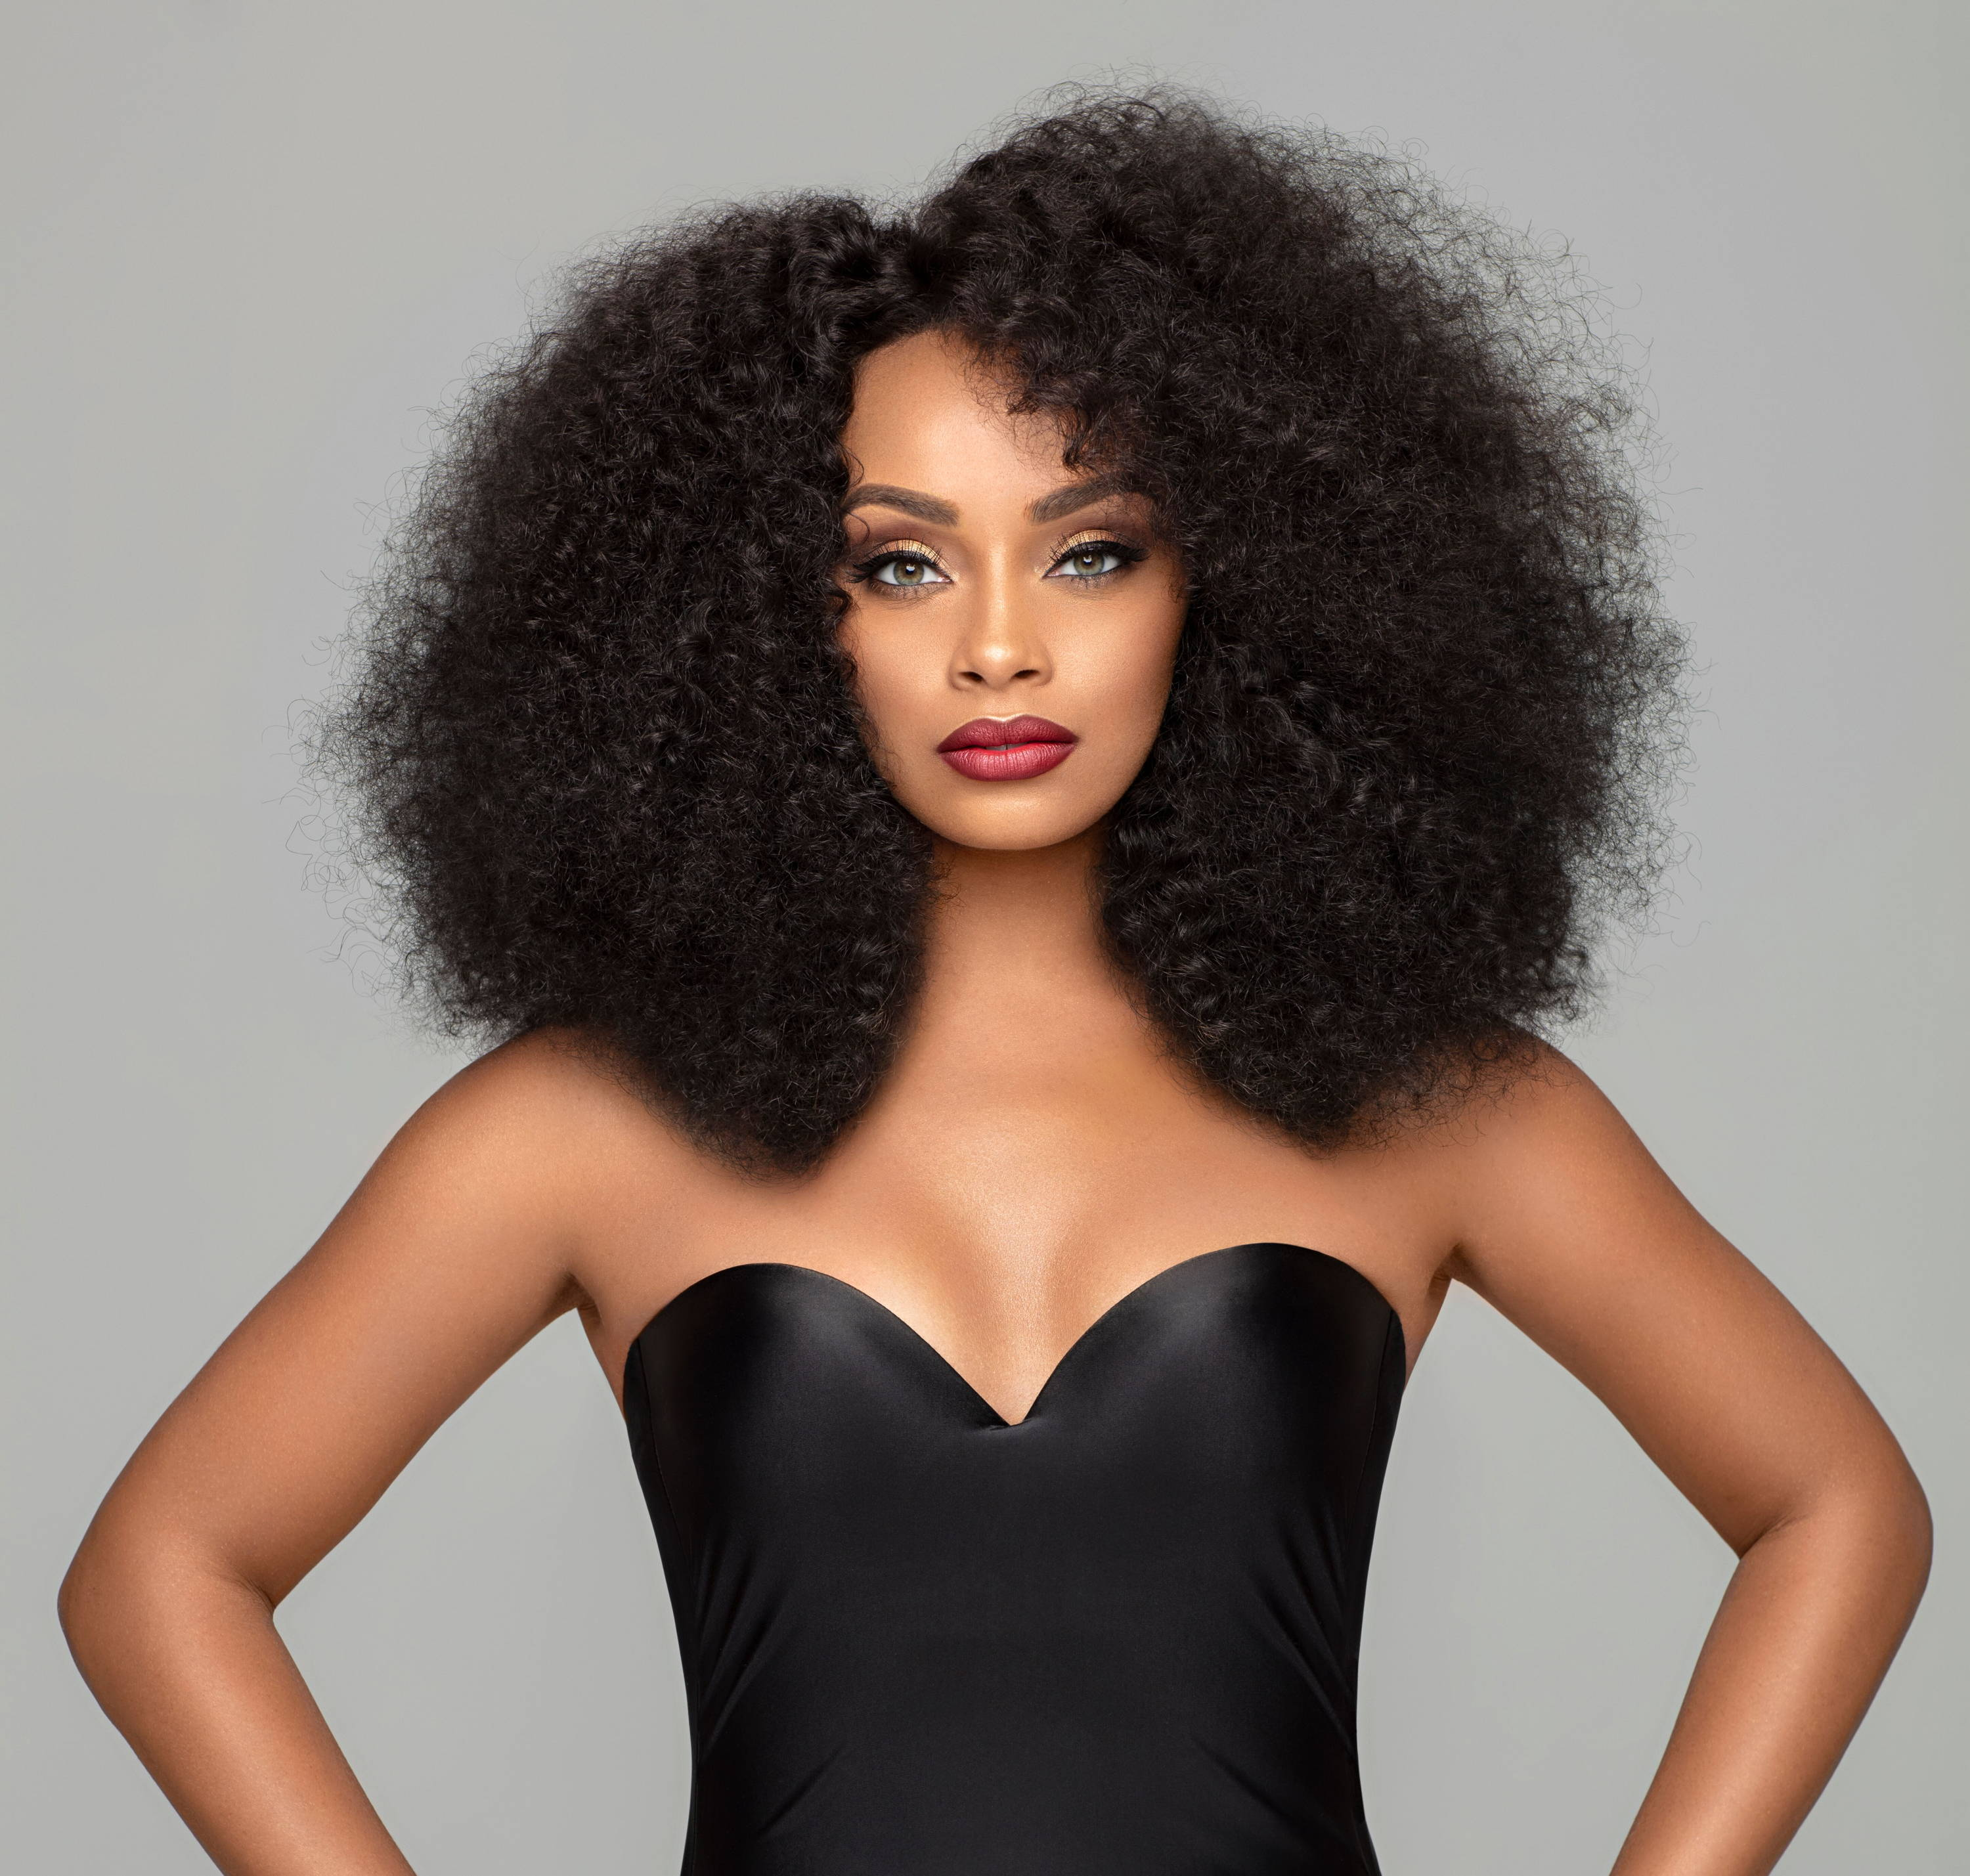 Chaka by Indique iKhanic Curl Wig